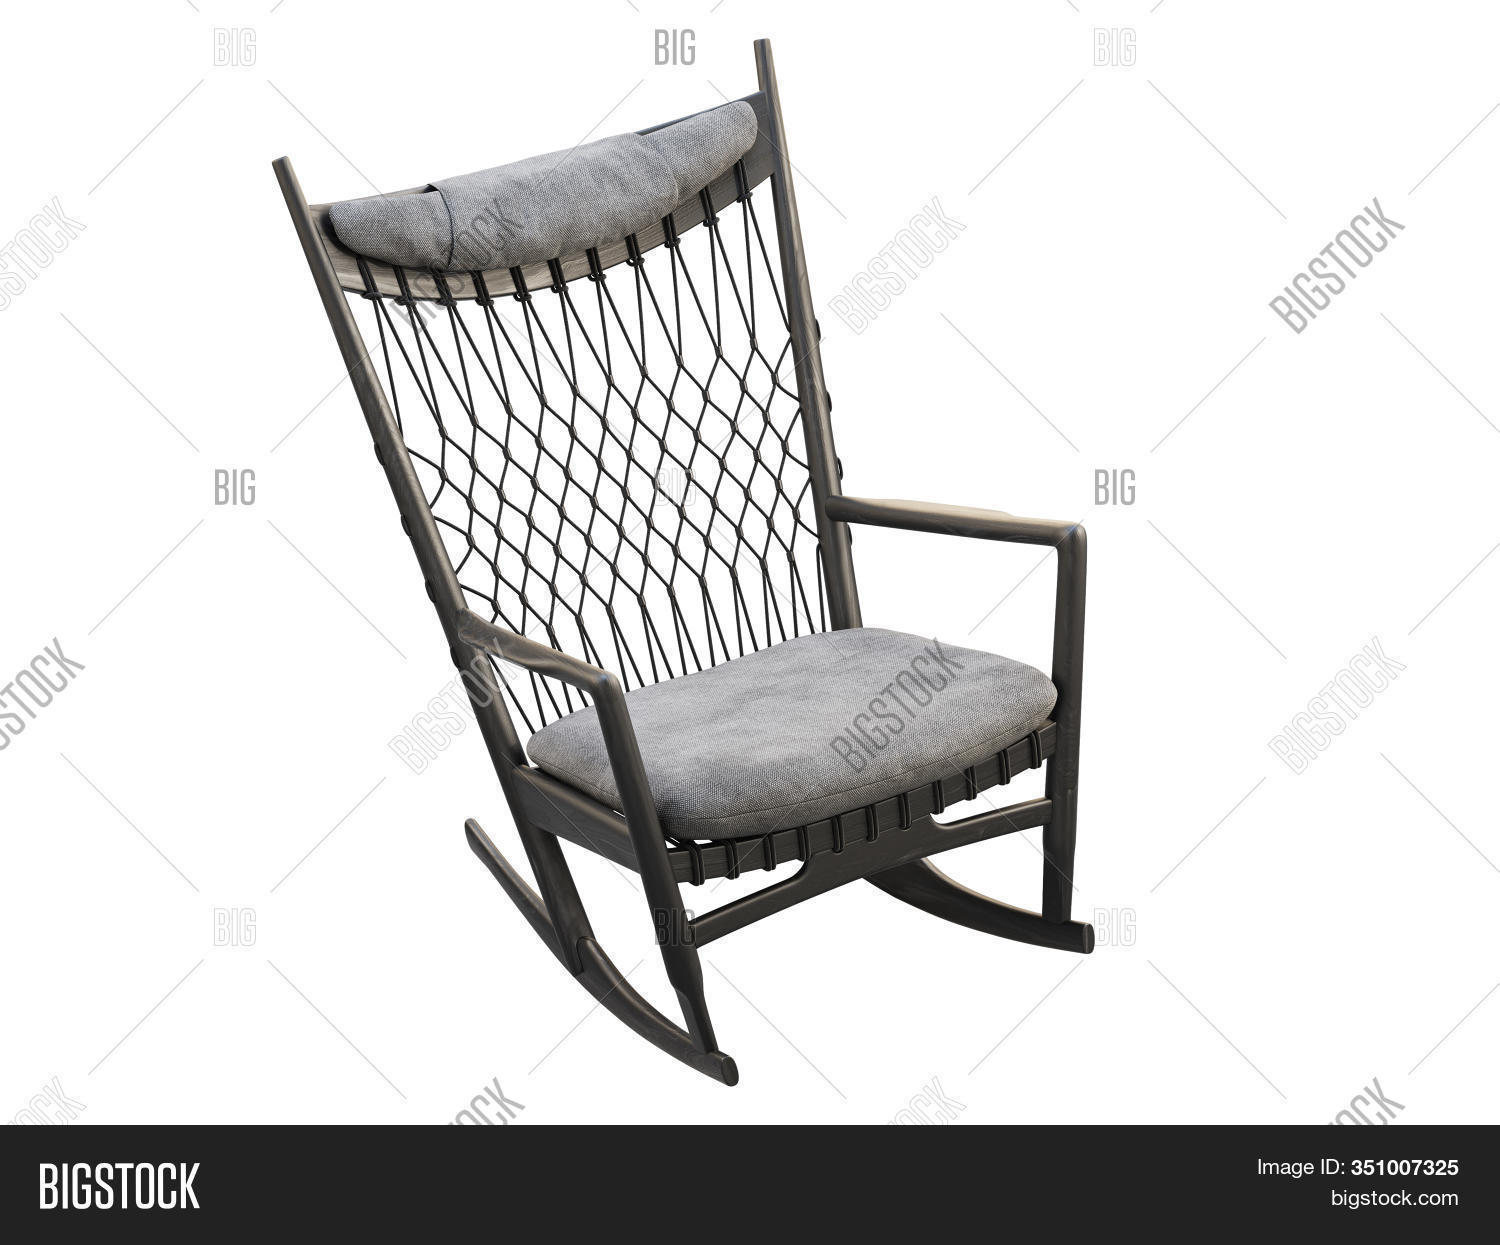 Picture of: Black Wood Rocking Image Photo Free Trial Bigstock